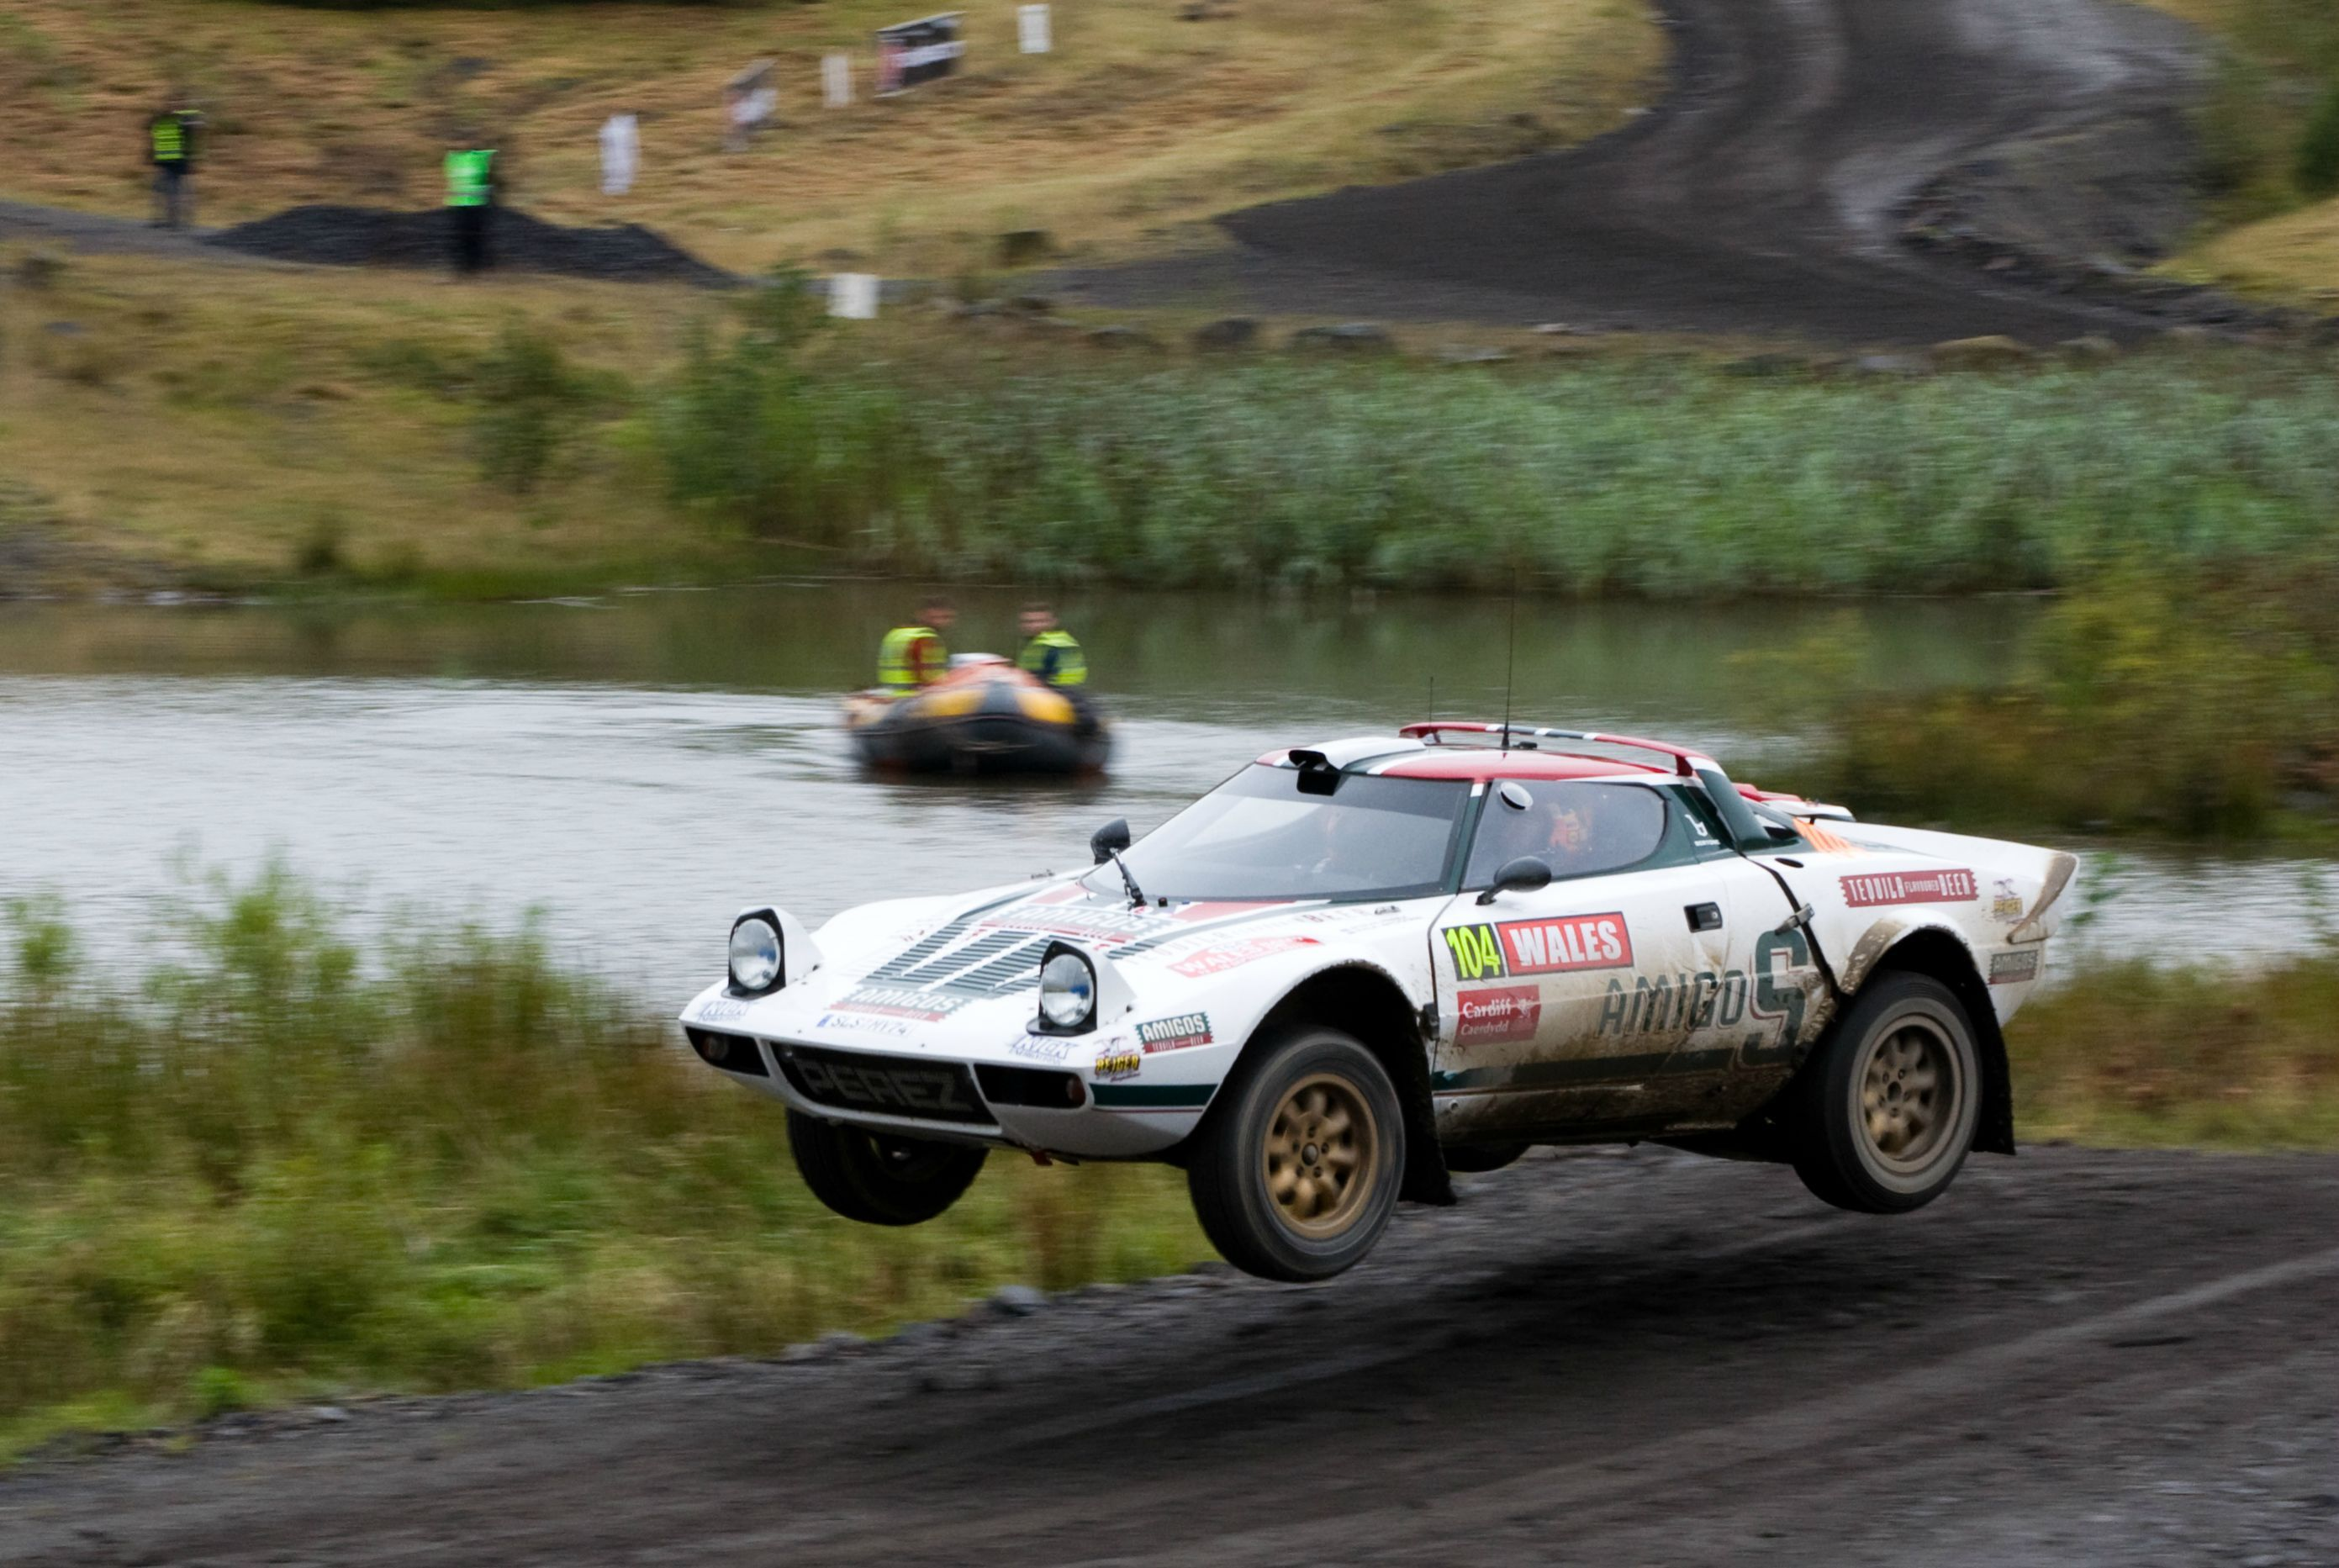 Steve perez lancia stratos walters arena rally gb national b only the best car ever made vanachro Images